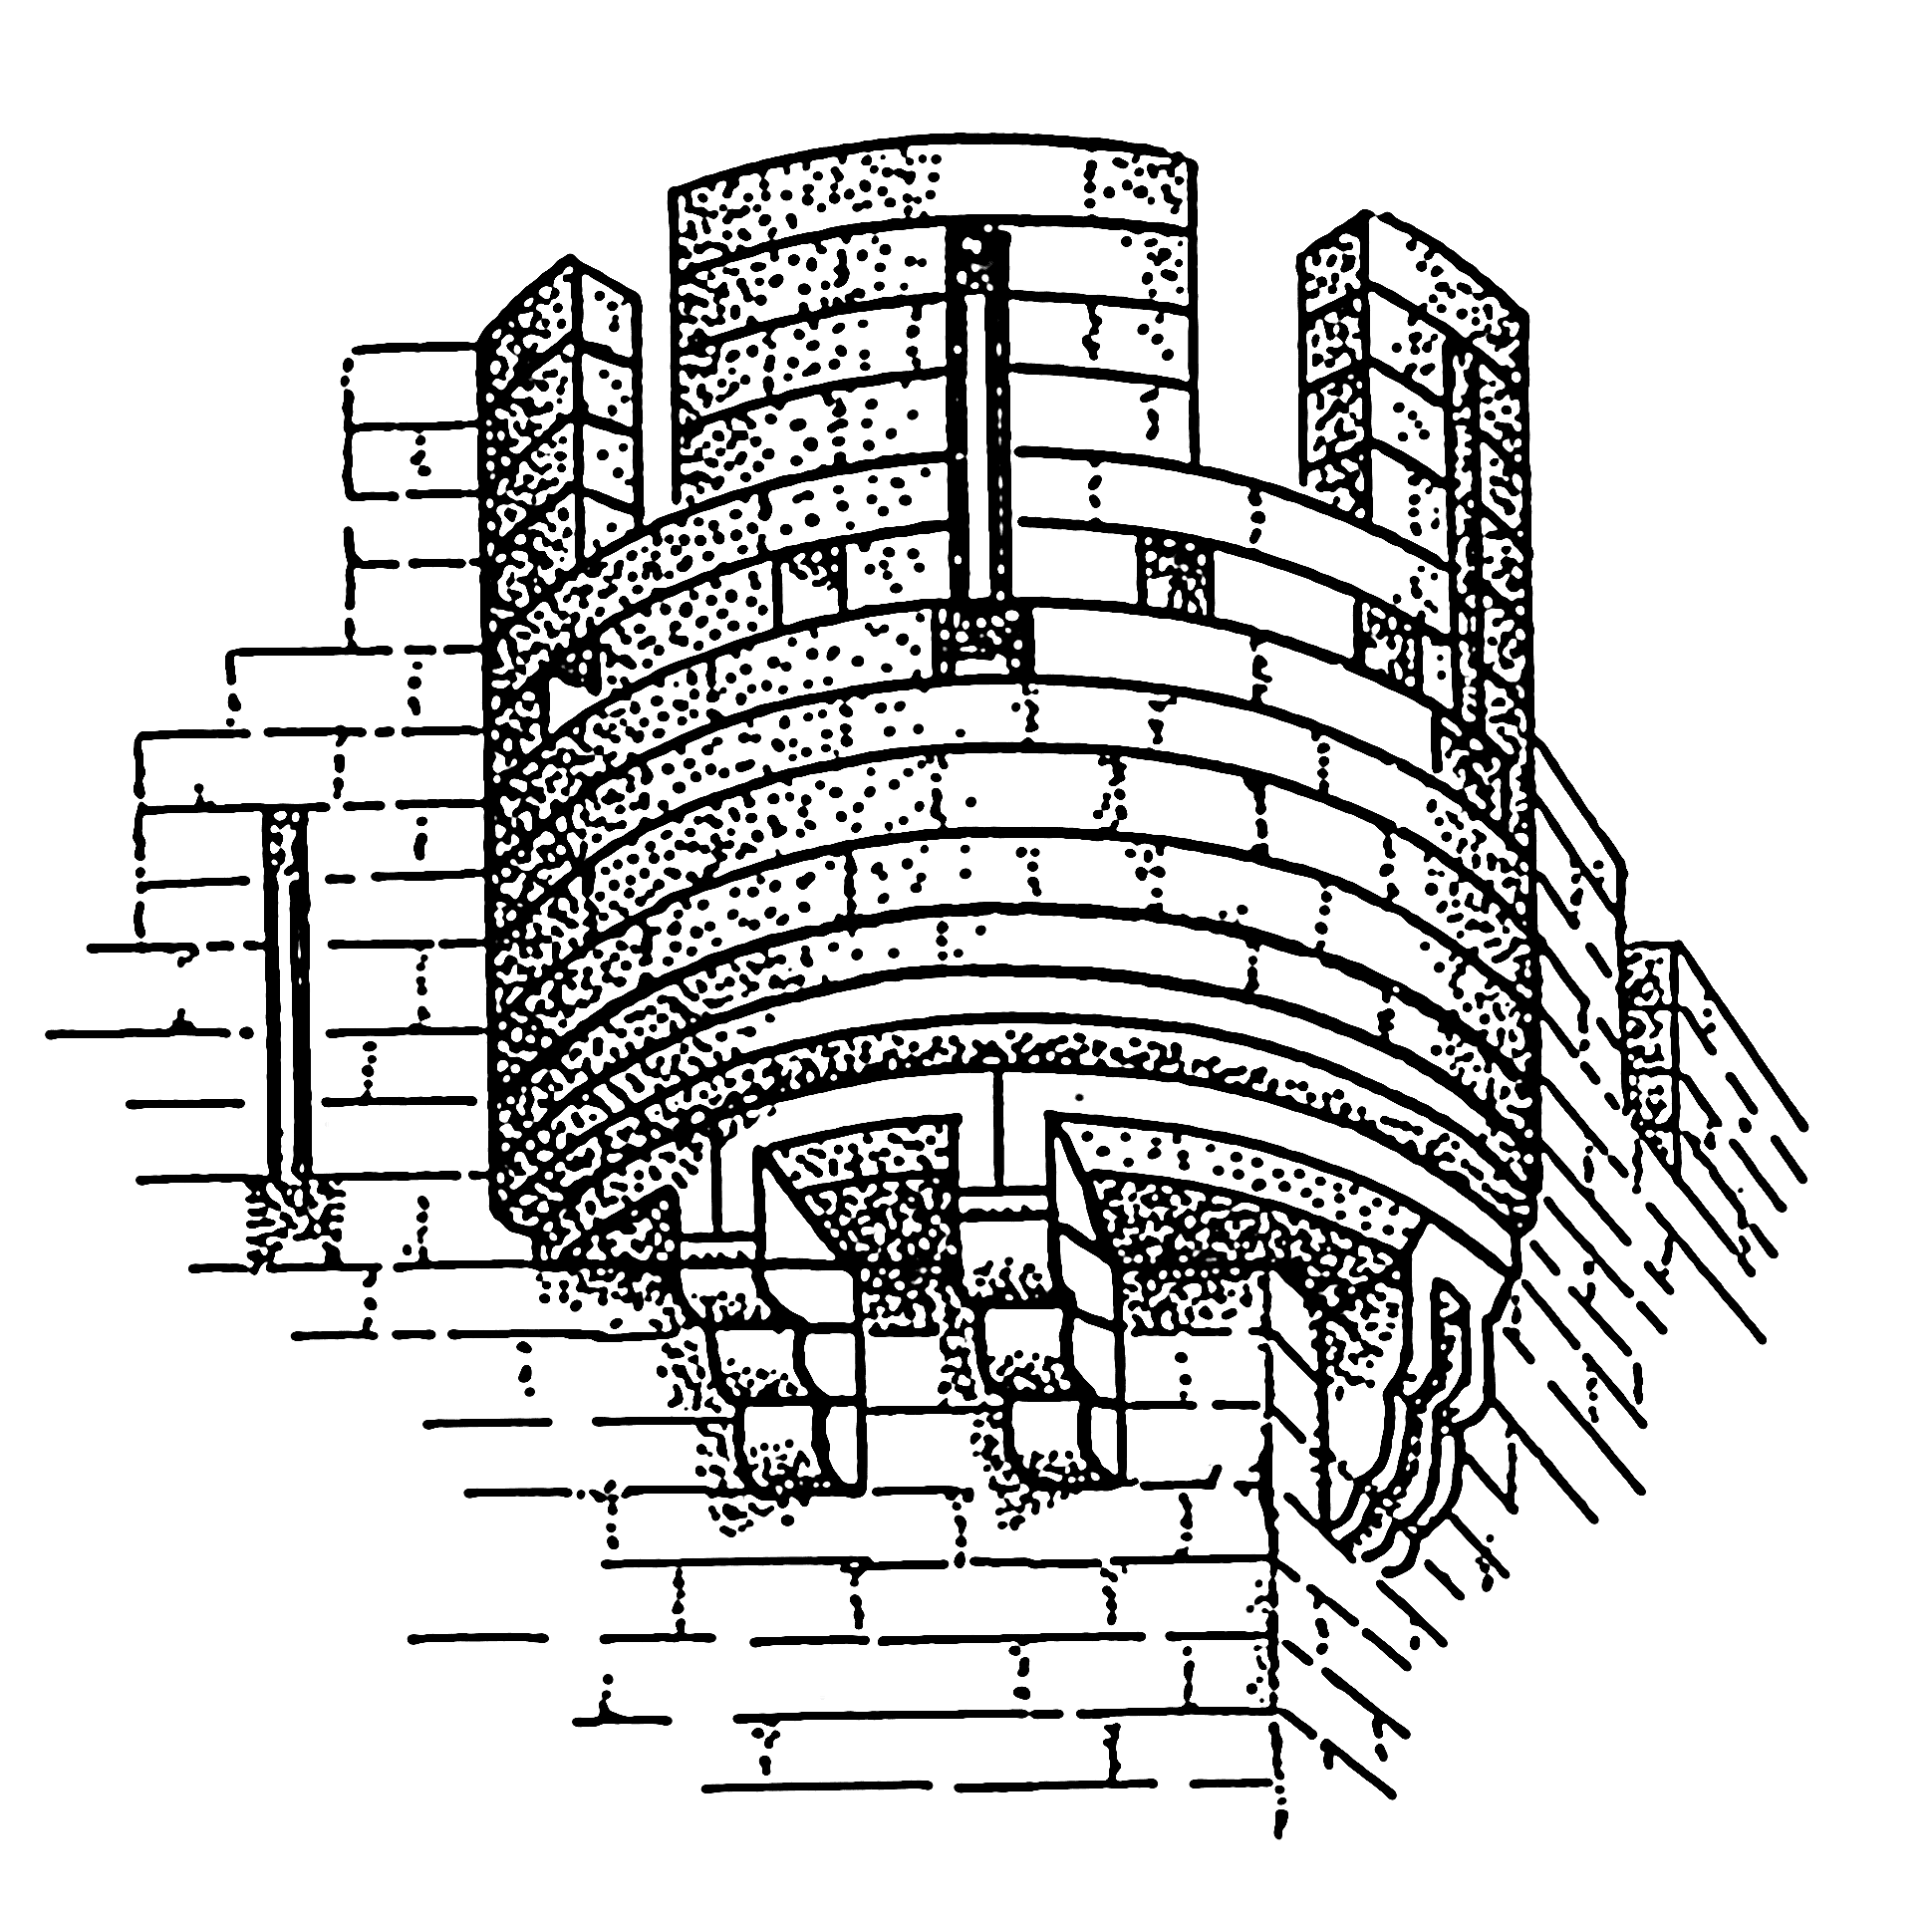 Drawn castle parapet wall Turret to a frequently Most